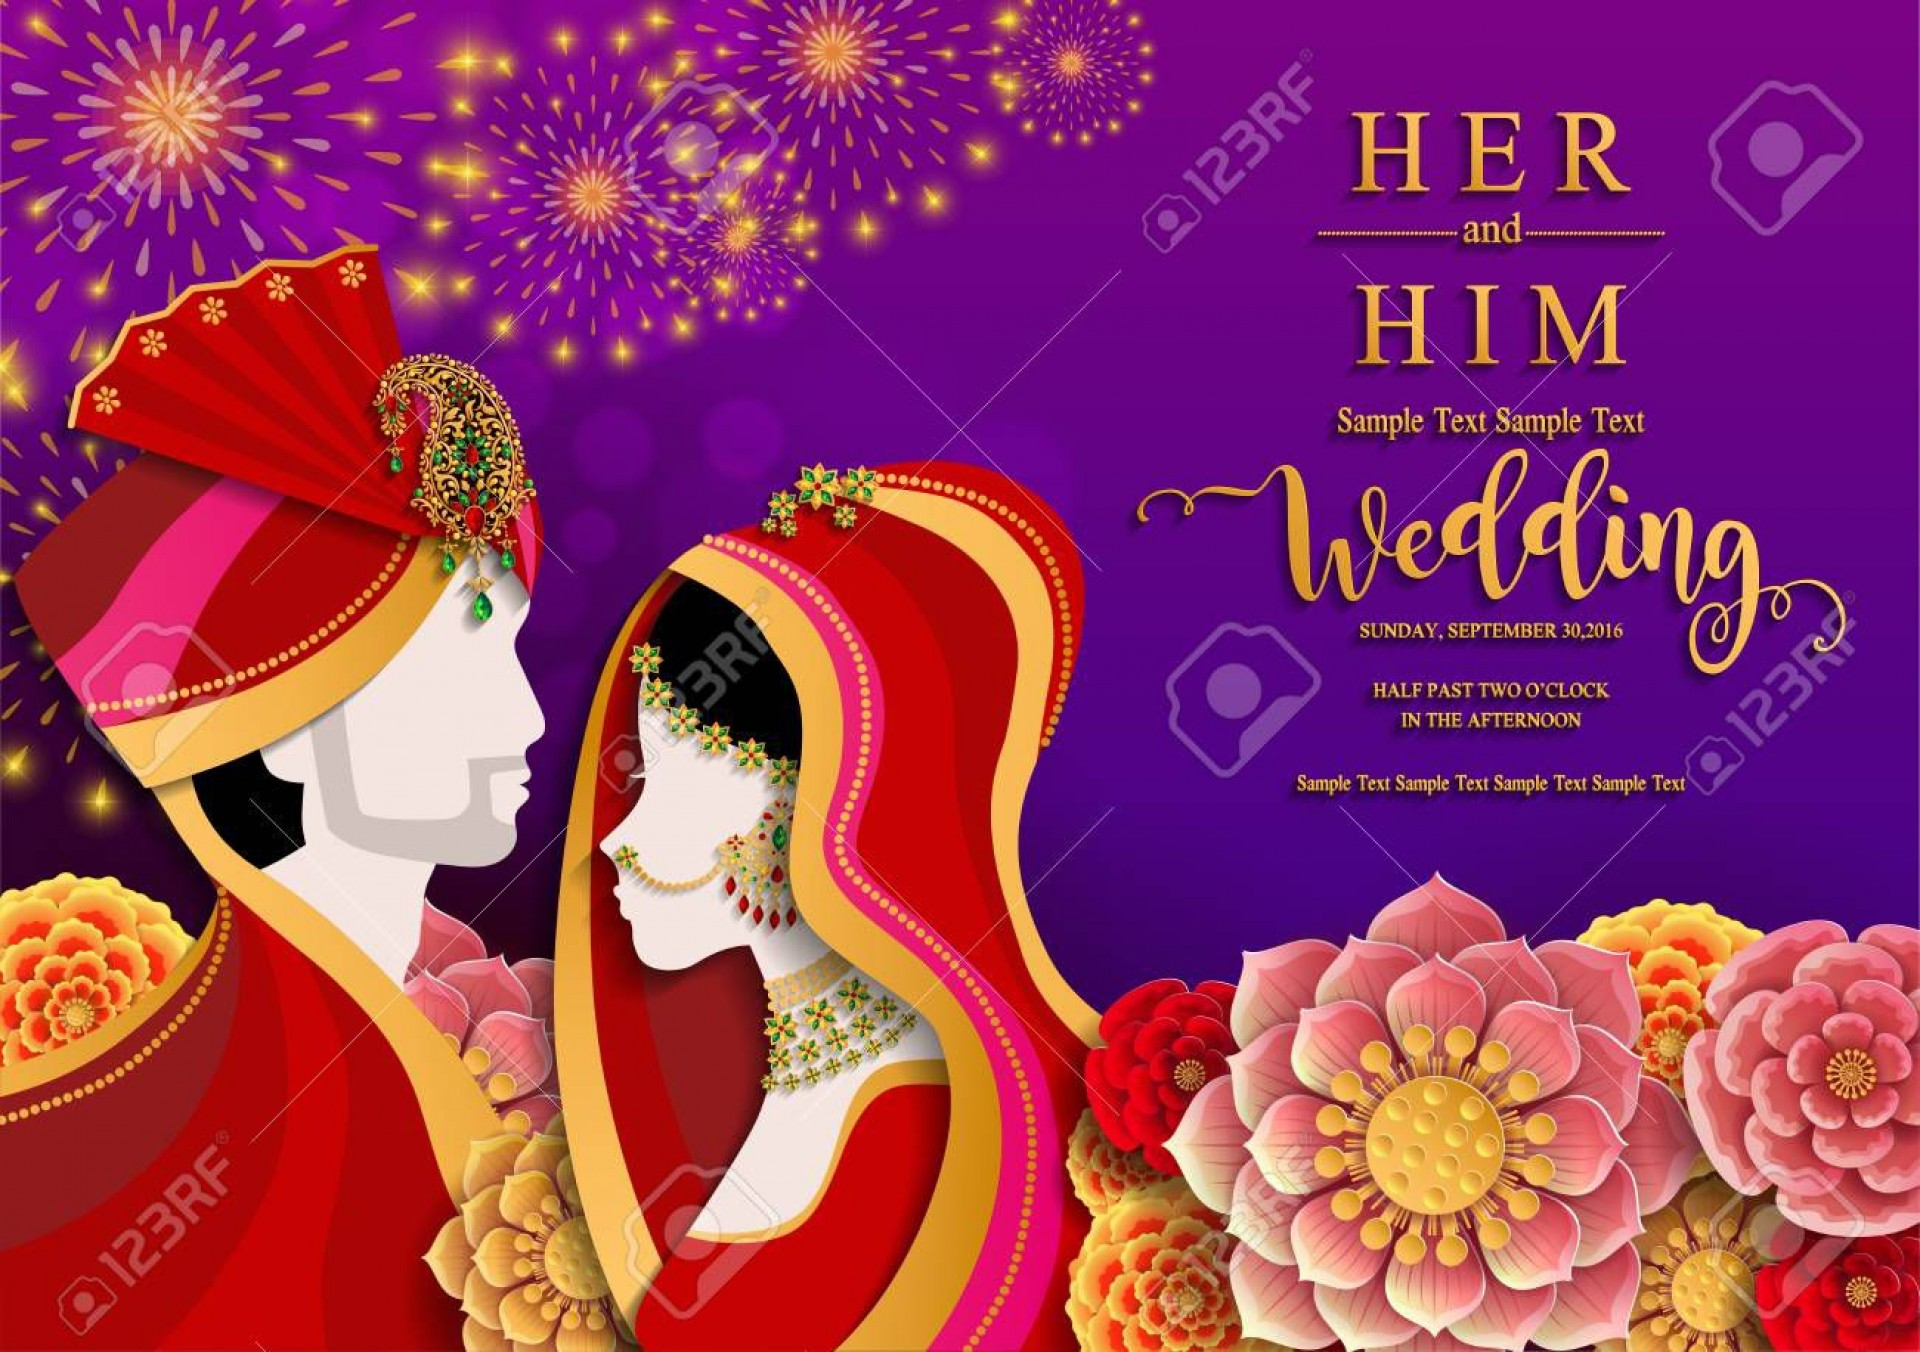 005 Astounding Indian Wedding Invitation Template Idea  Psd Free Download Marriage Online For Friend1920